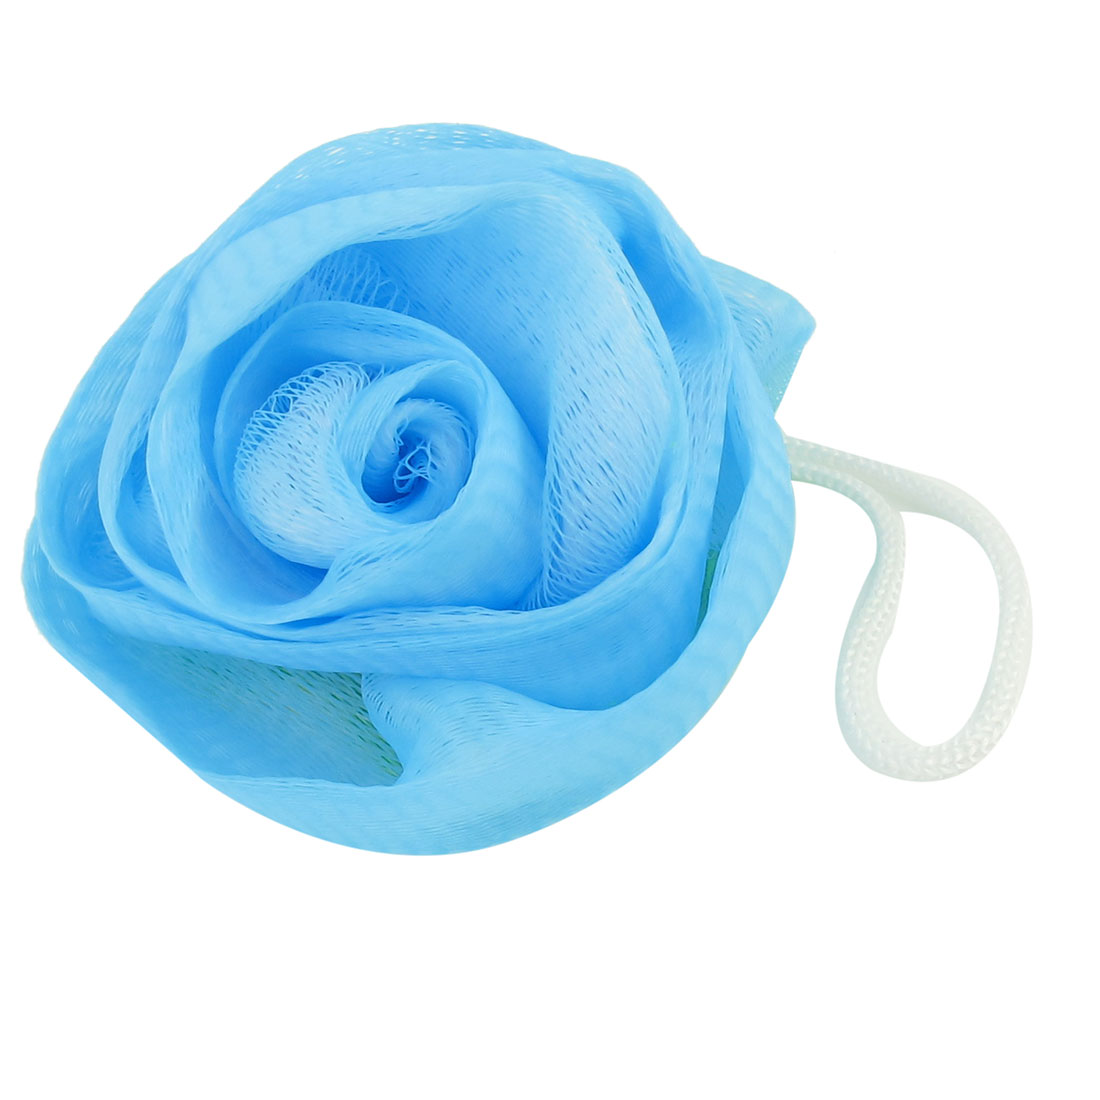 "3.3"" Dia Blue Green Nylon Rose Design Foam Bubbles Bath Shower Pouf w Strap"